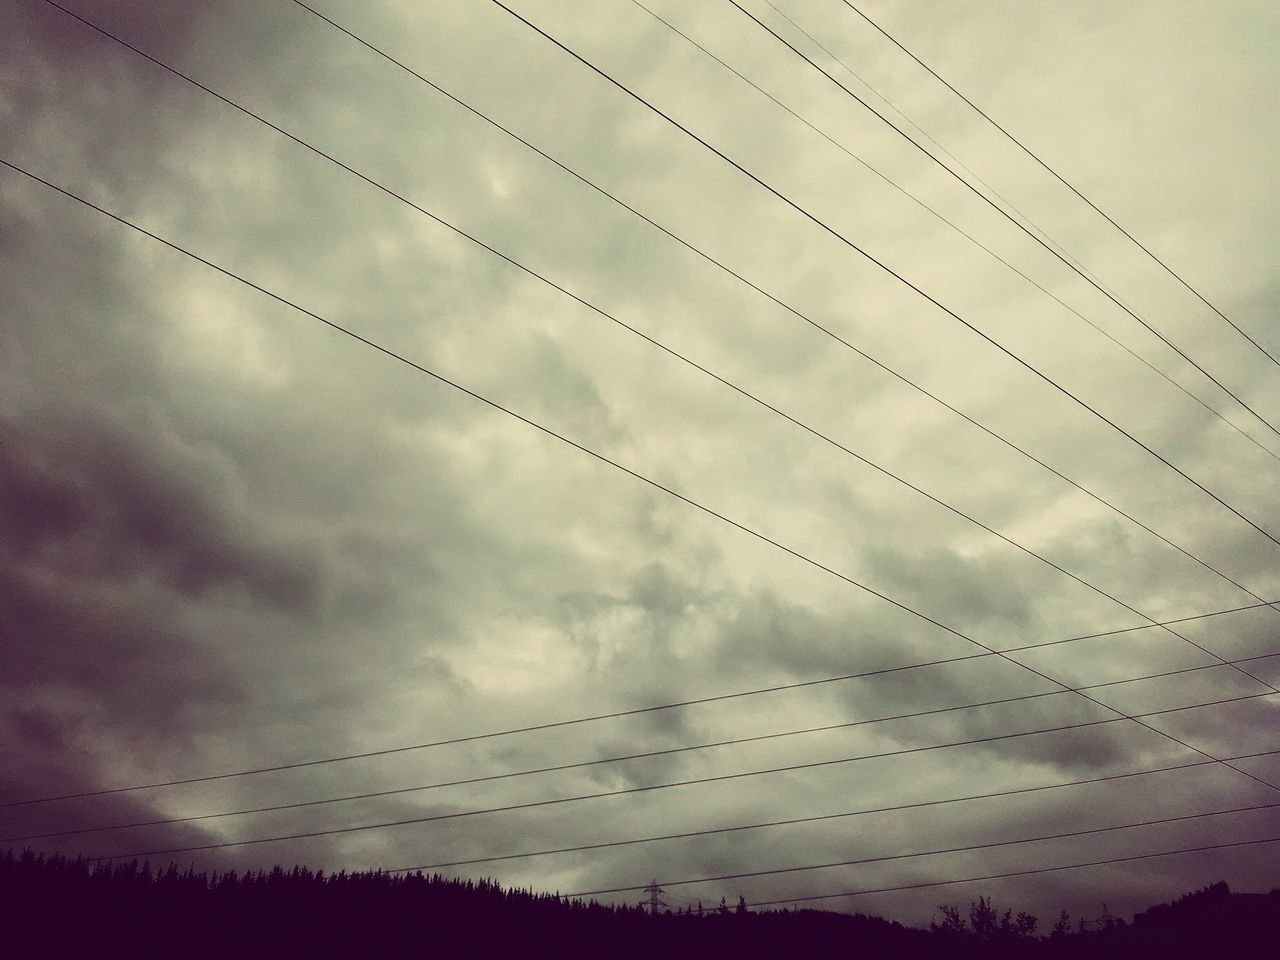 Low Angle View Of Cables Against Clouds